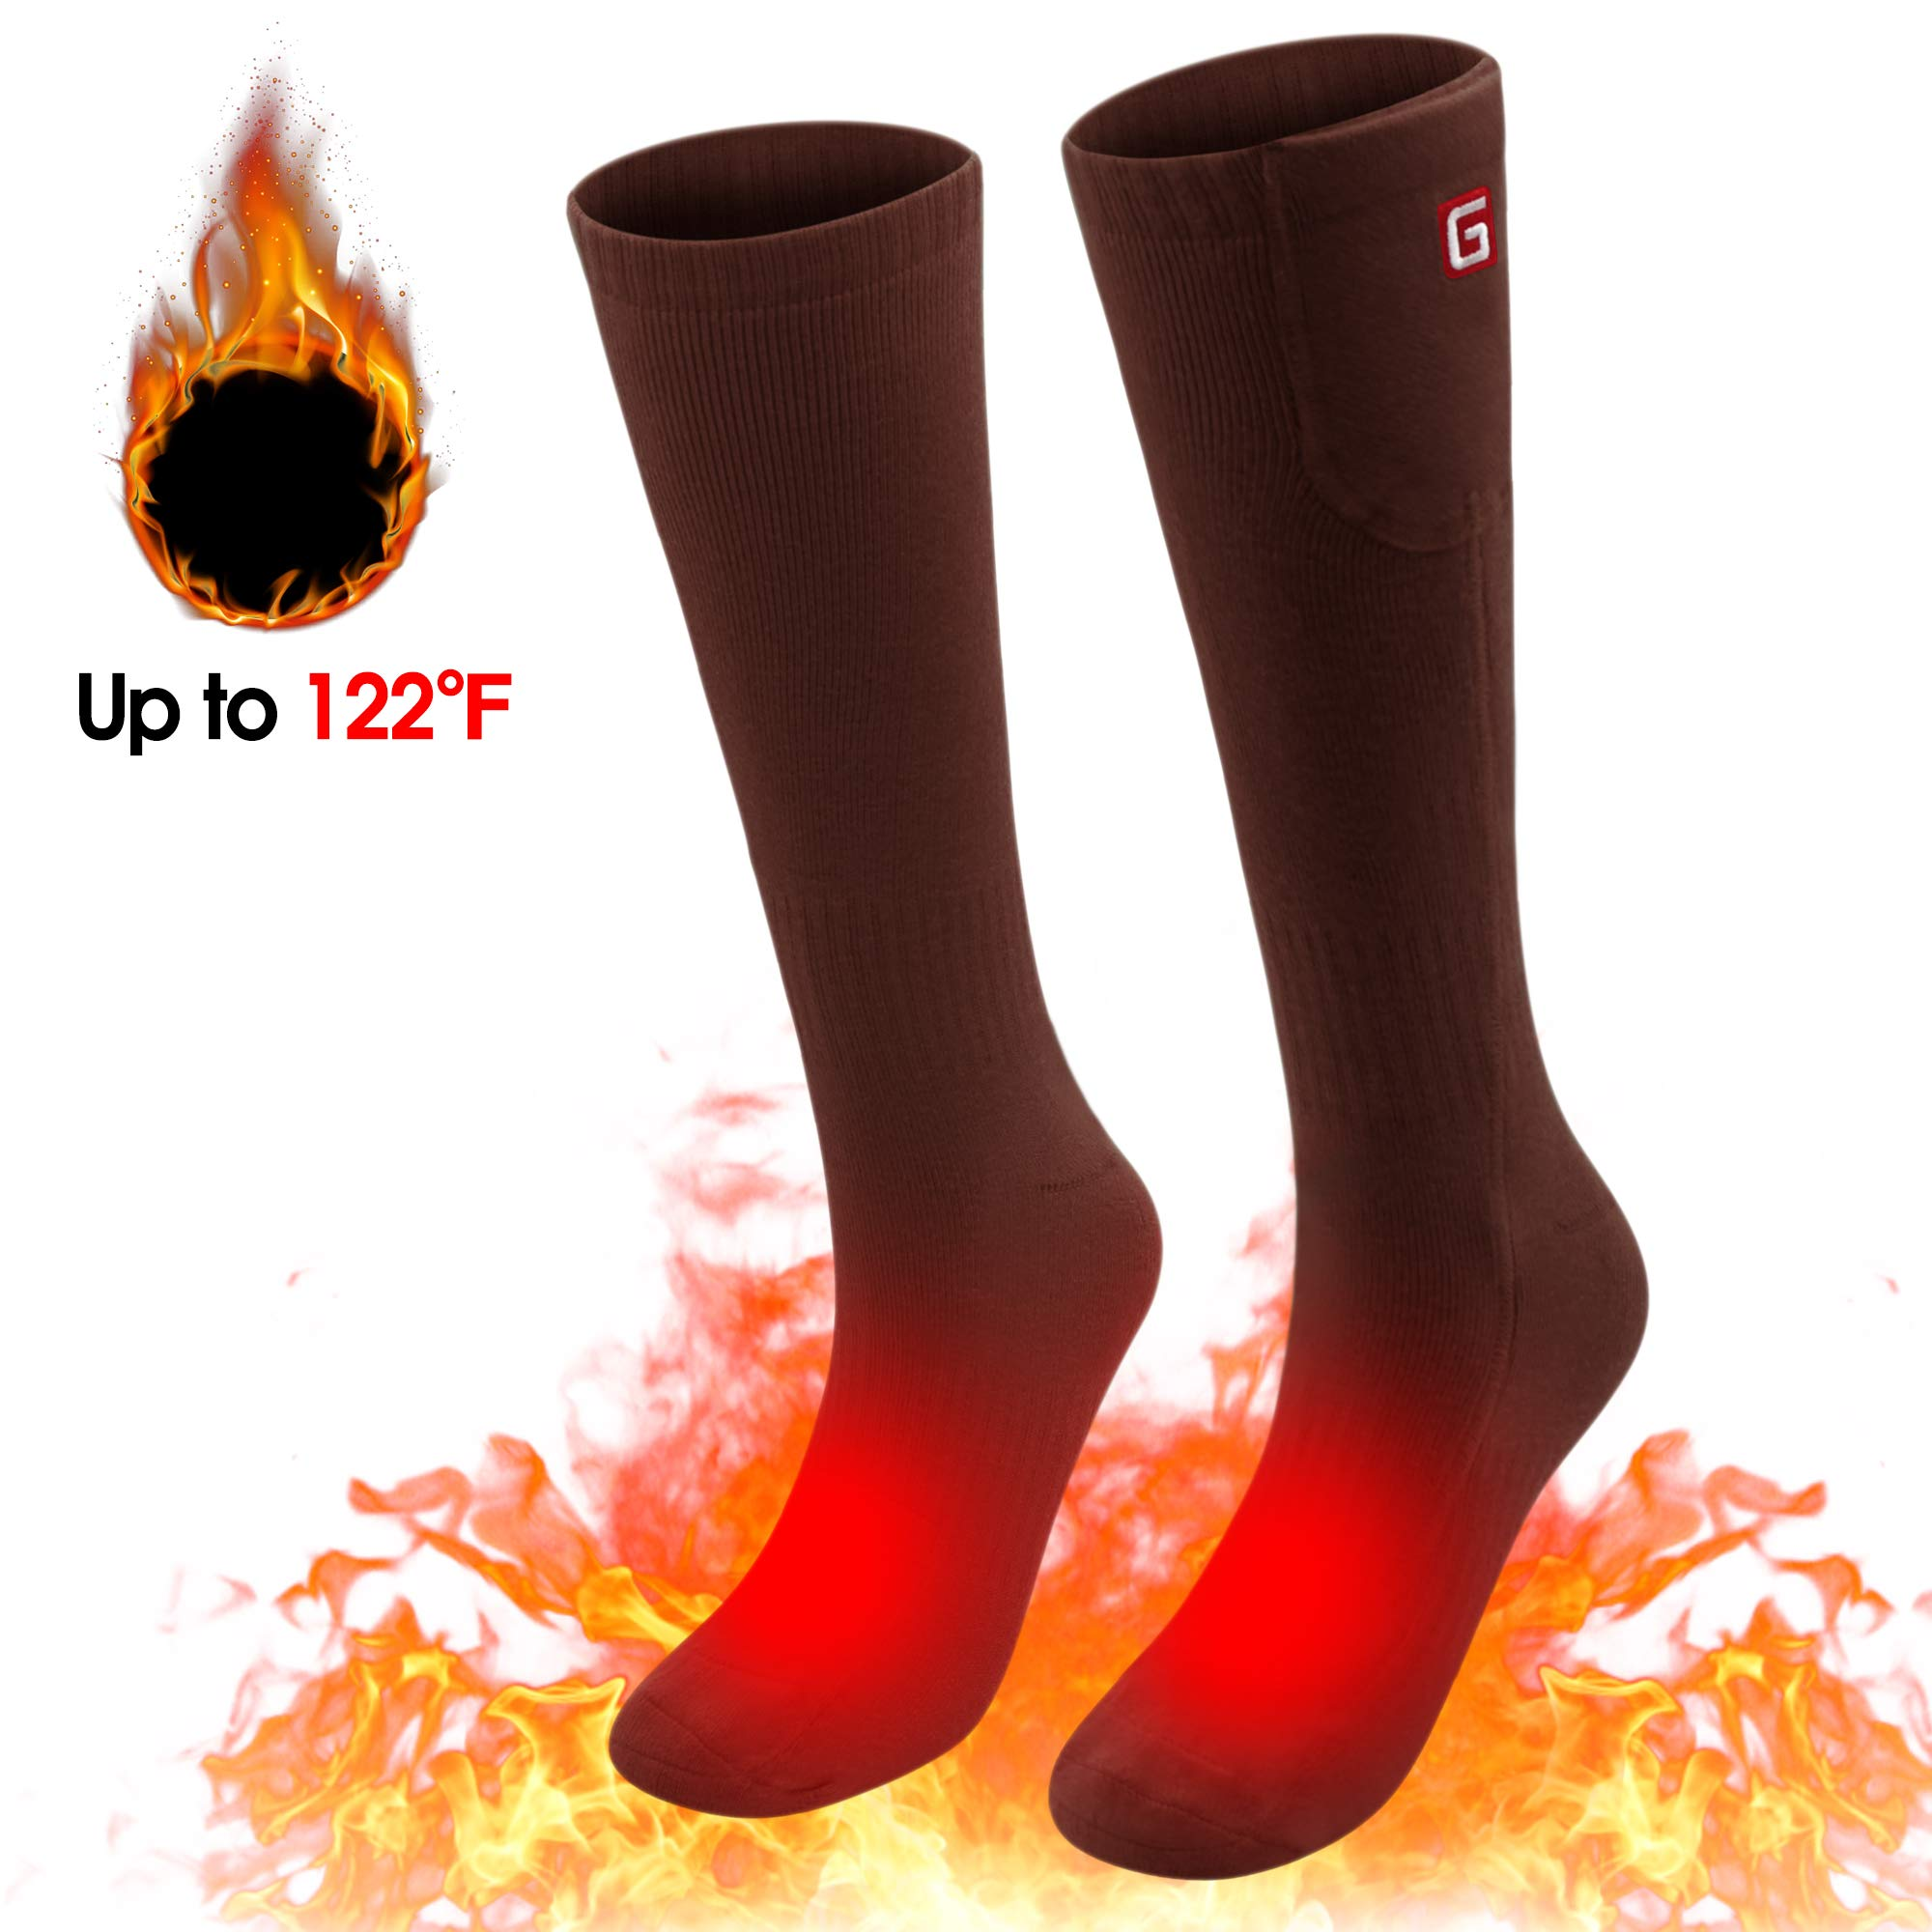 Spring Heated Socks,3.7V 2200MAH Electric Rechargeable Battery Heating Socks for Men Women Warm Cotton Socks Foot Warmer Hot Feet (Brown) by Unknown